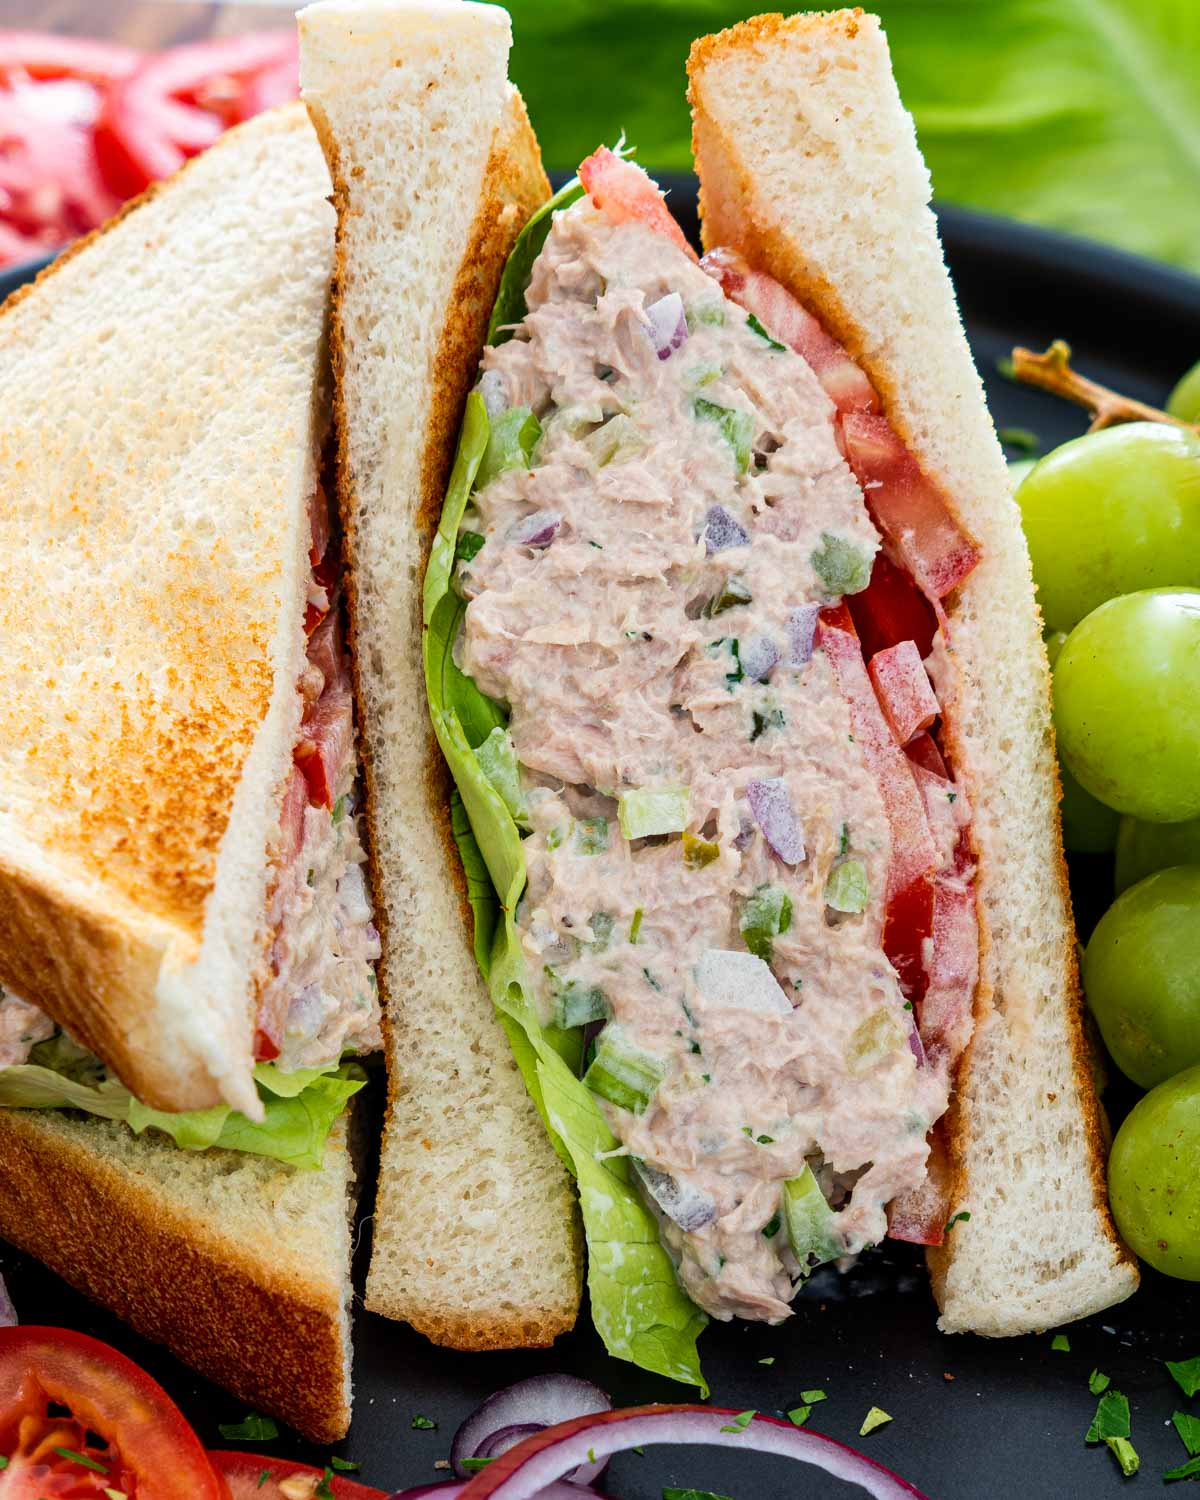 a tuna salad sandwich with lettuce and tomatoes.